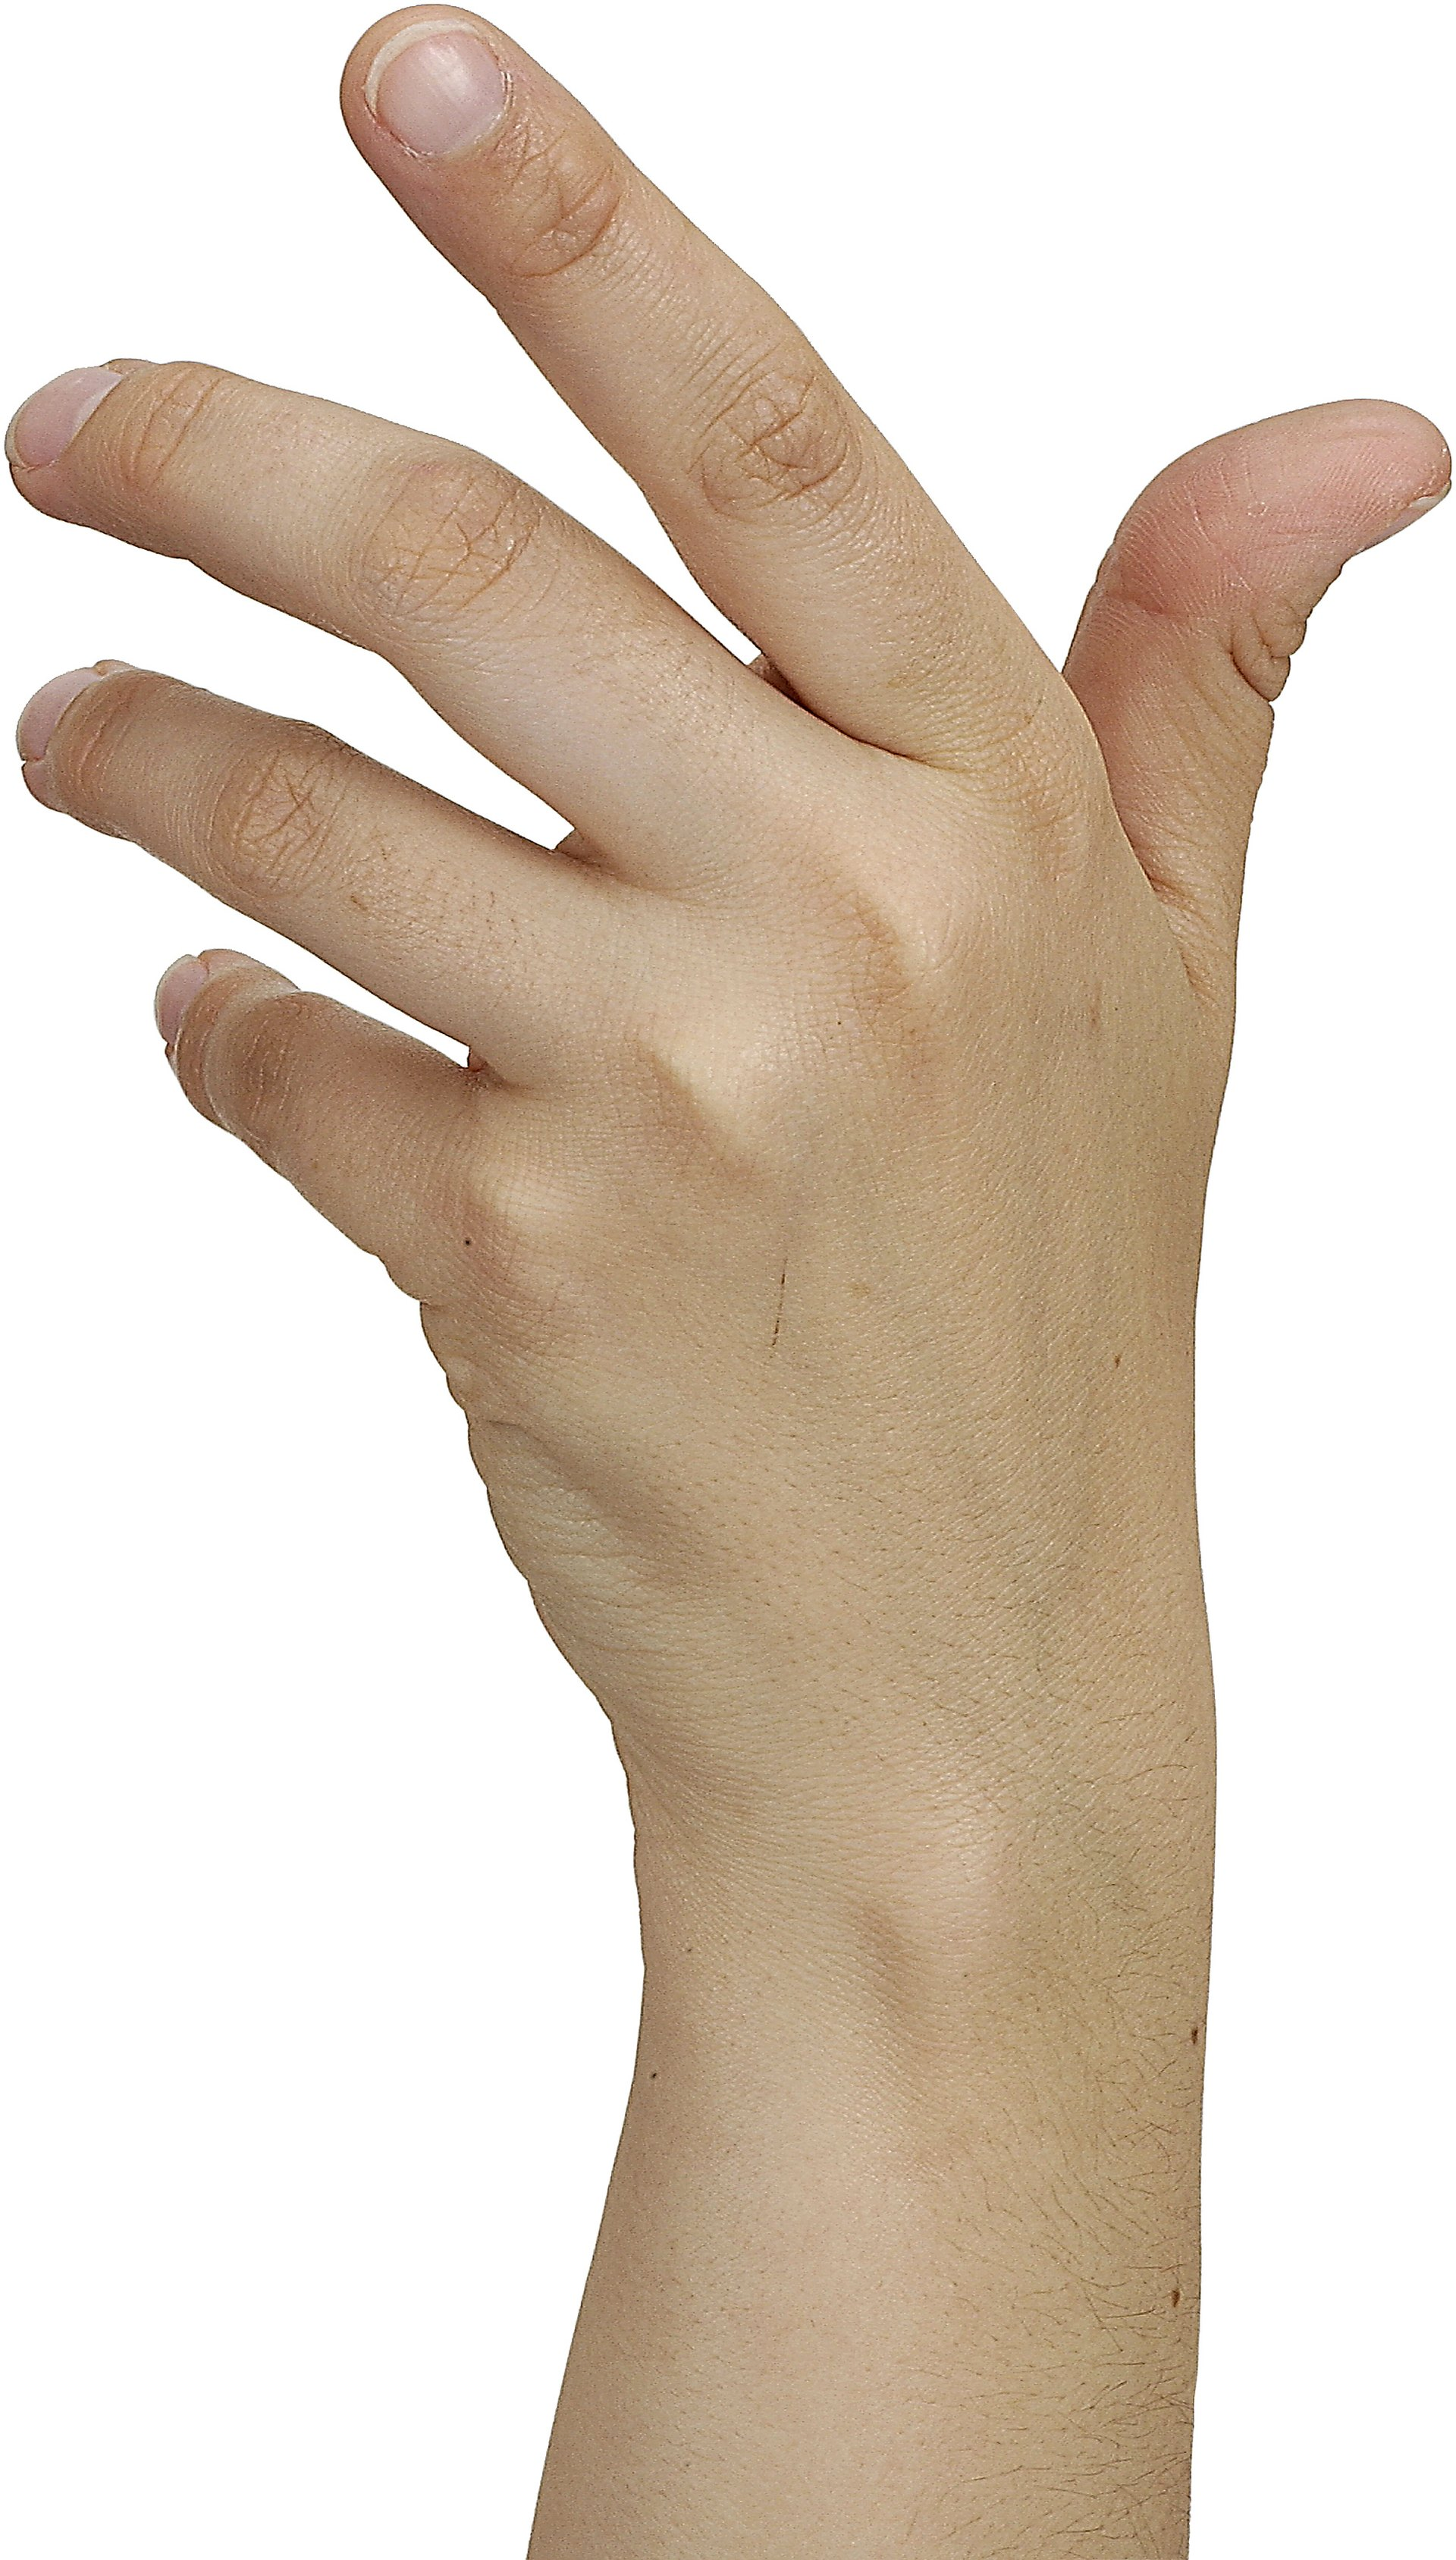 From what are the veins in the hands of the guy visible